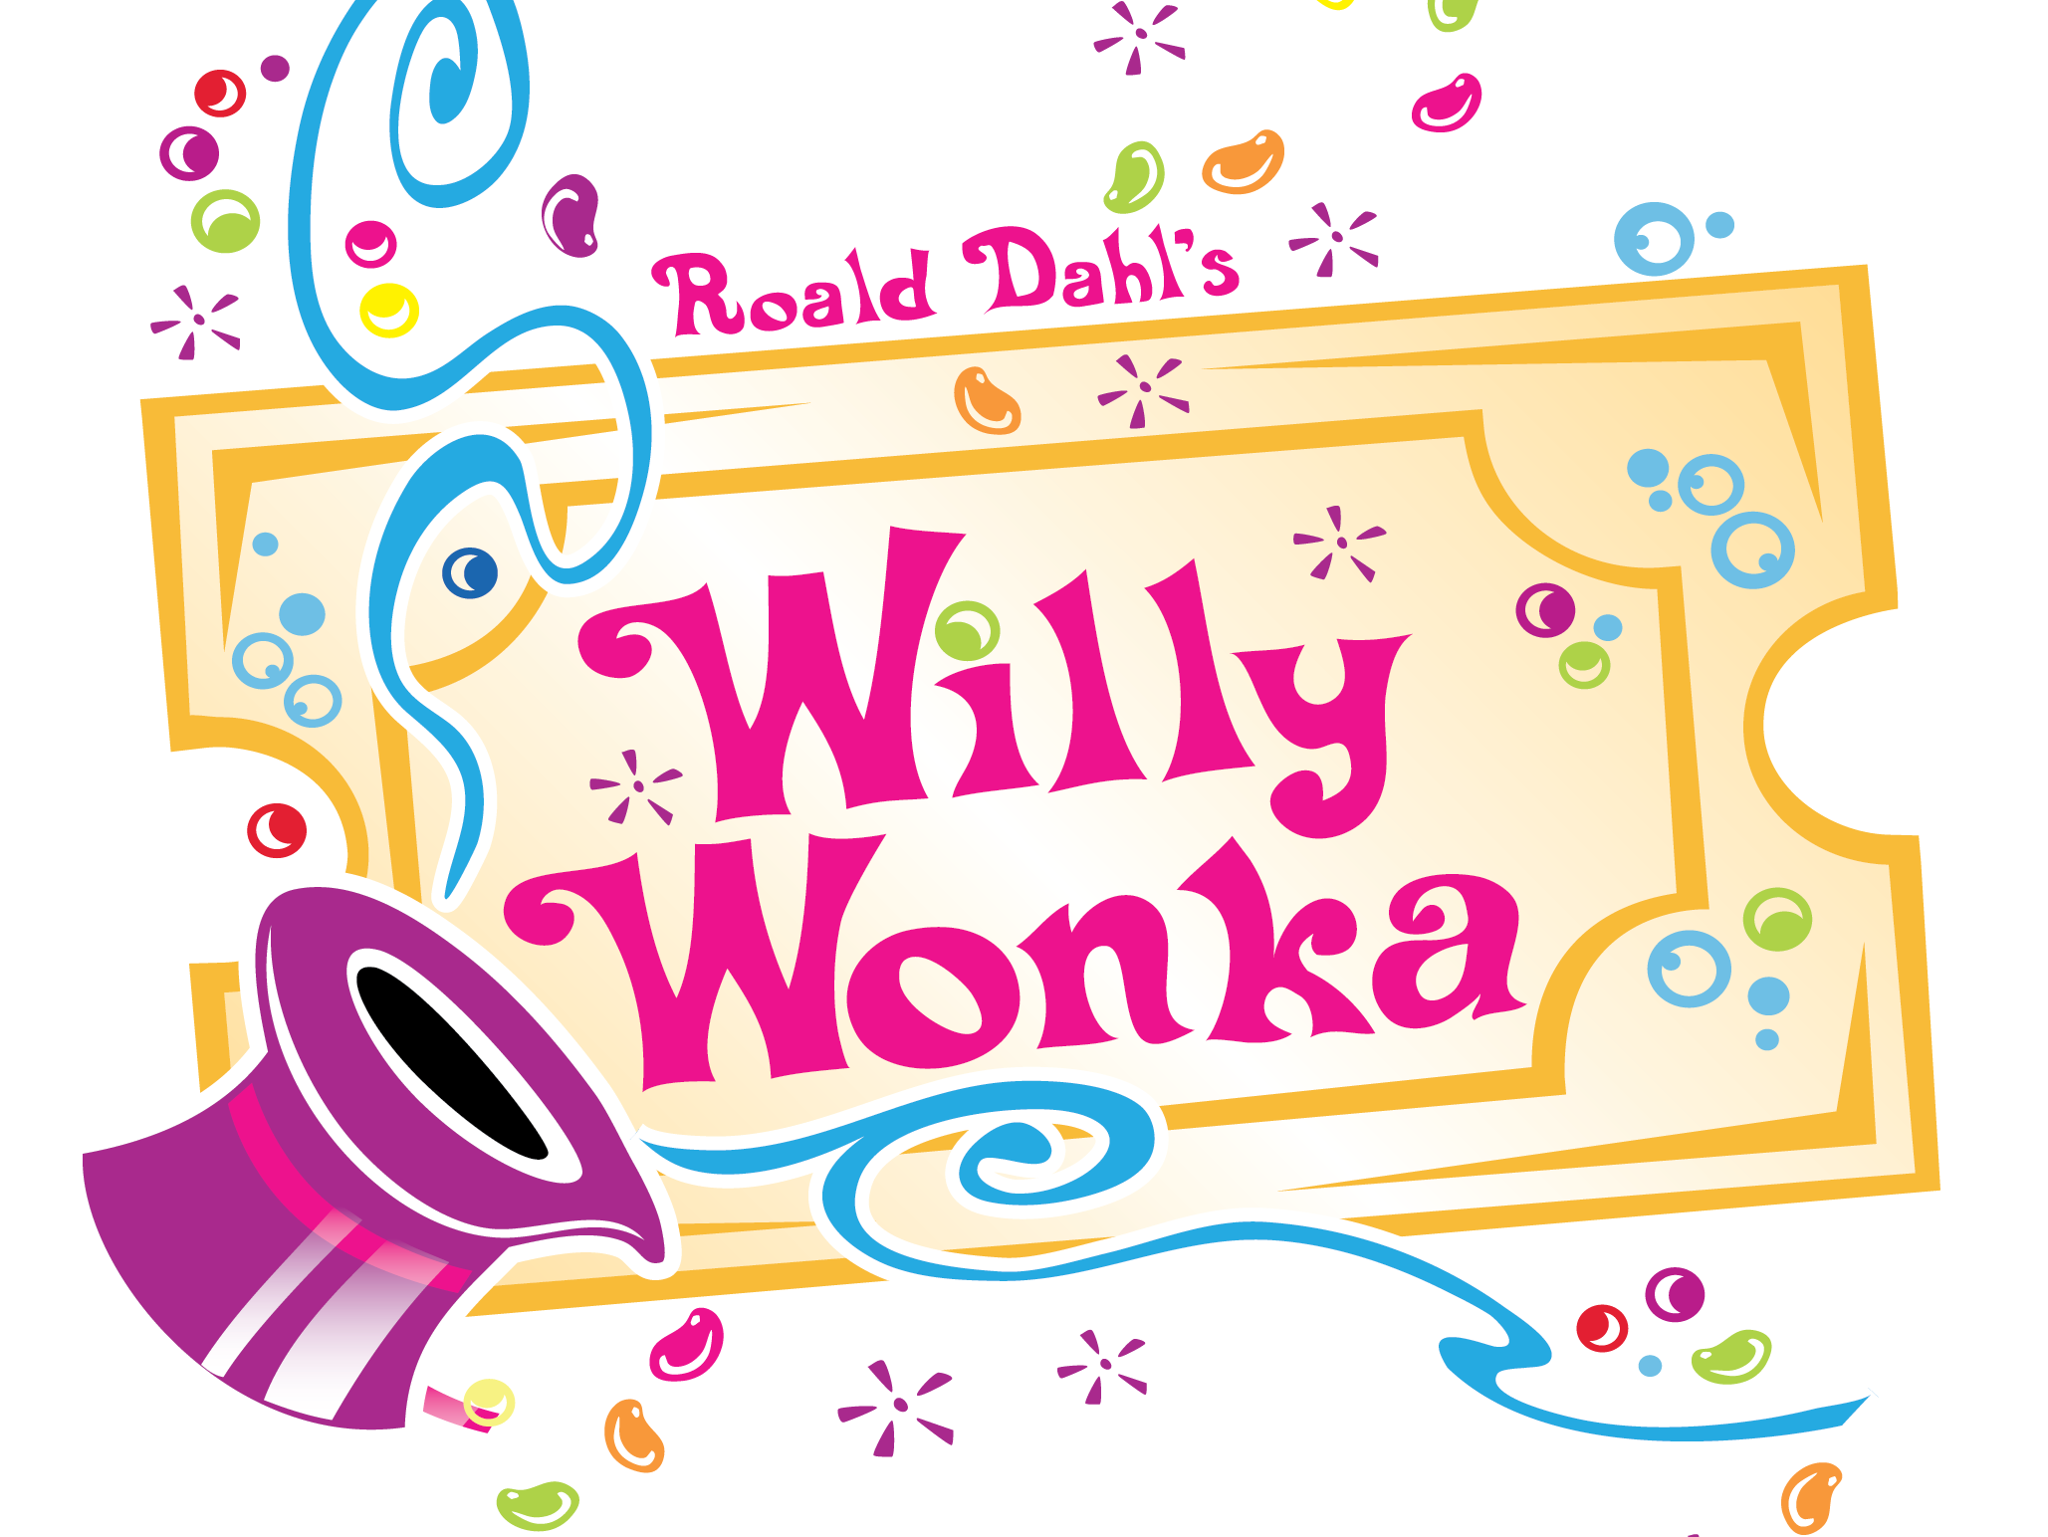 Roald Dahl Character description - Willy Wonka